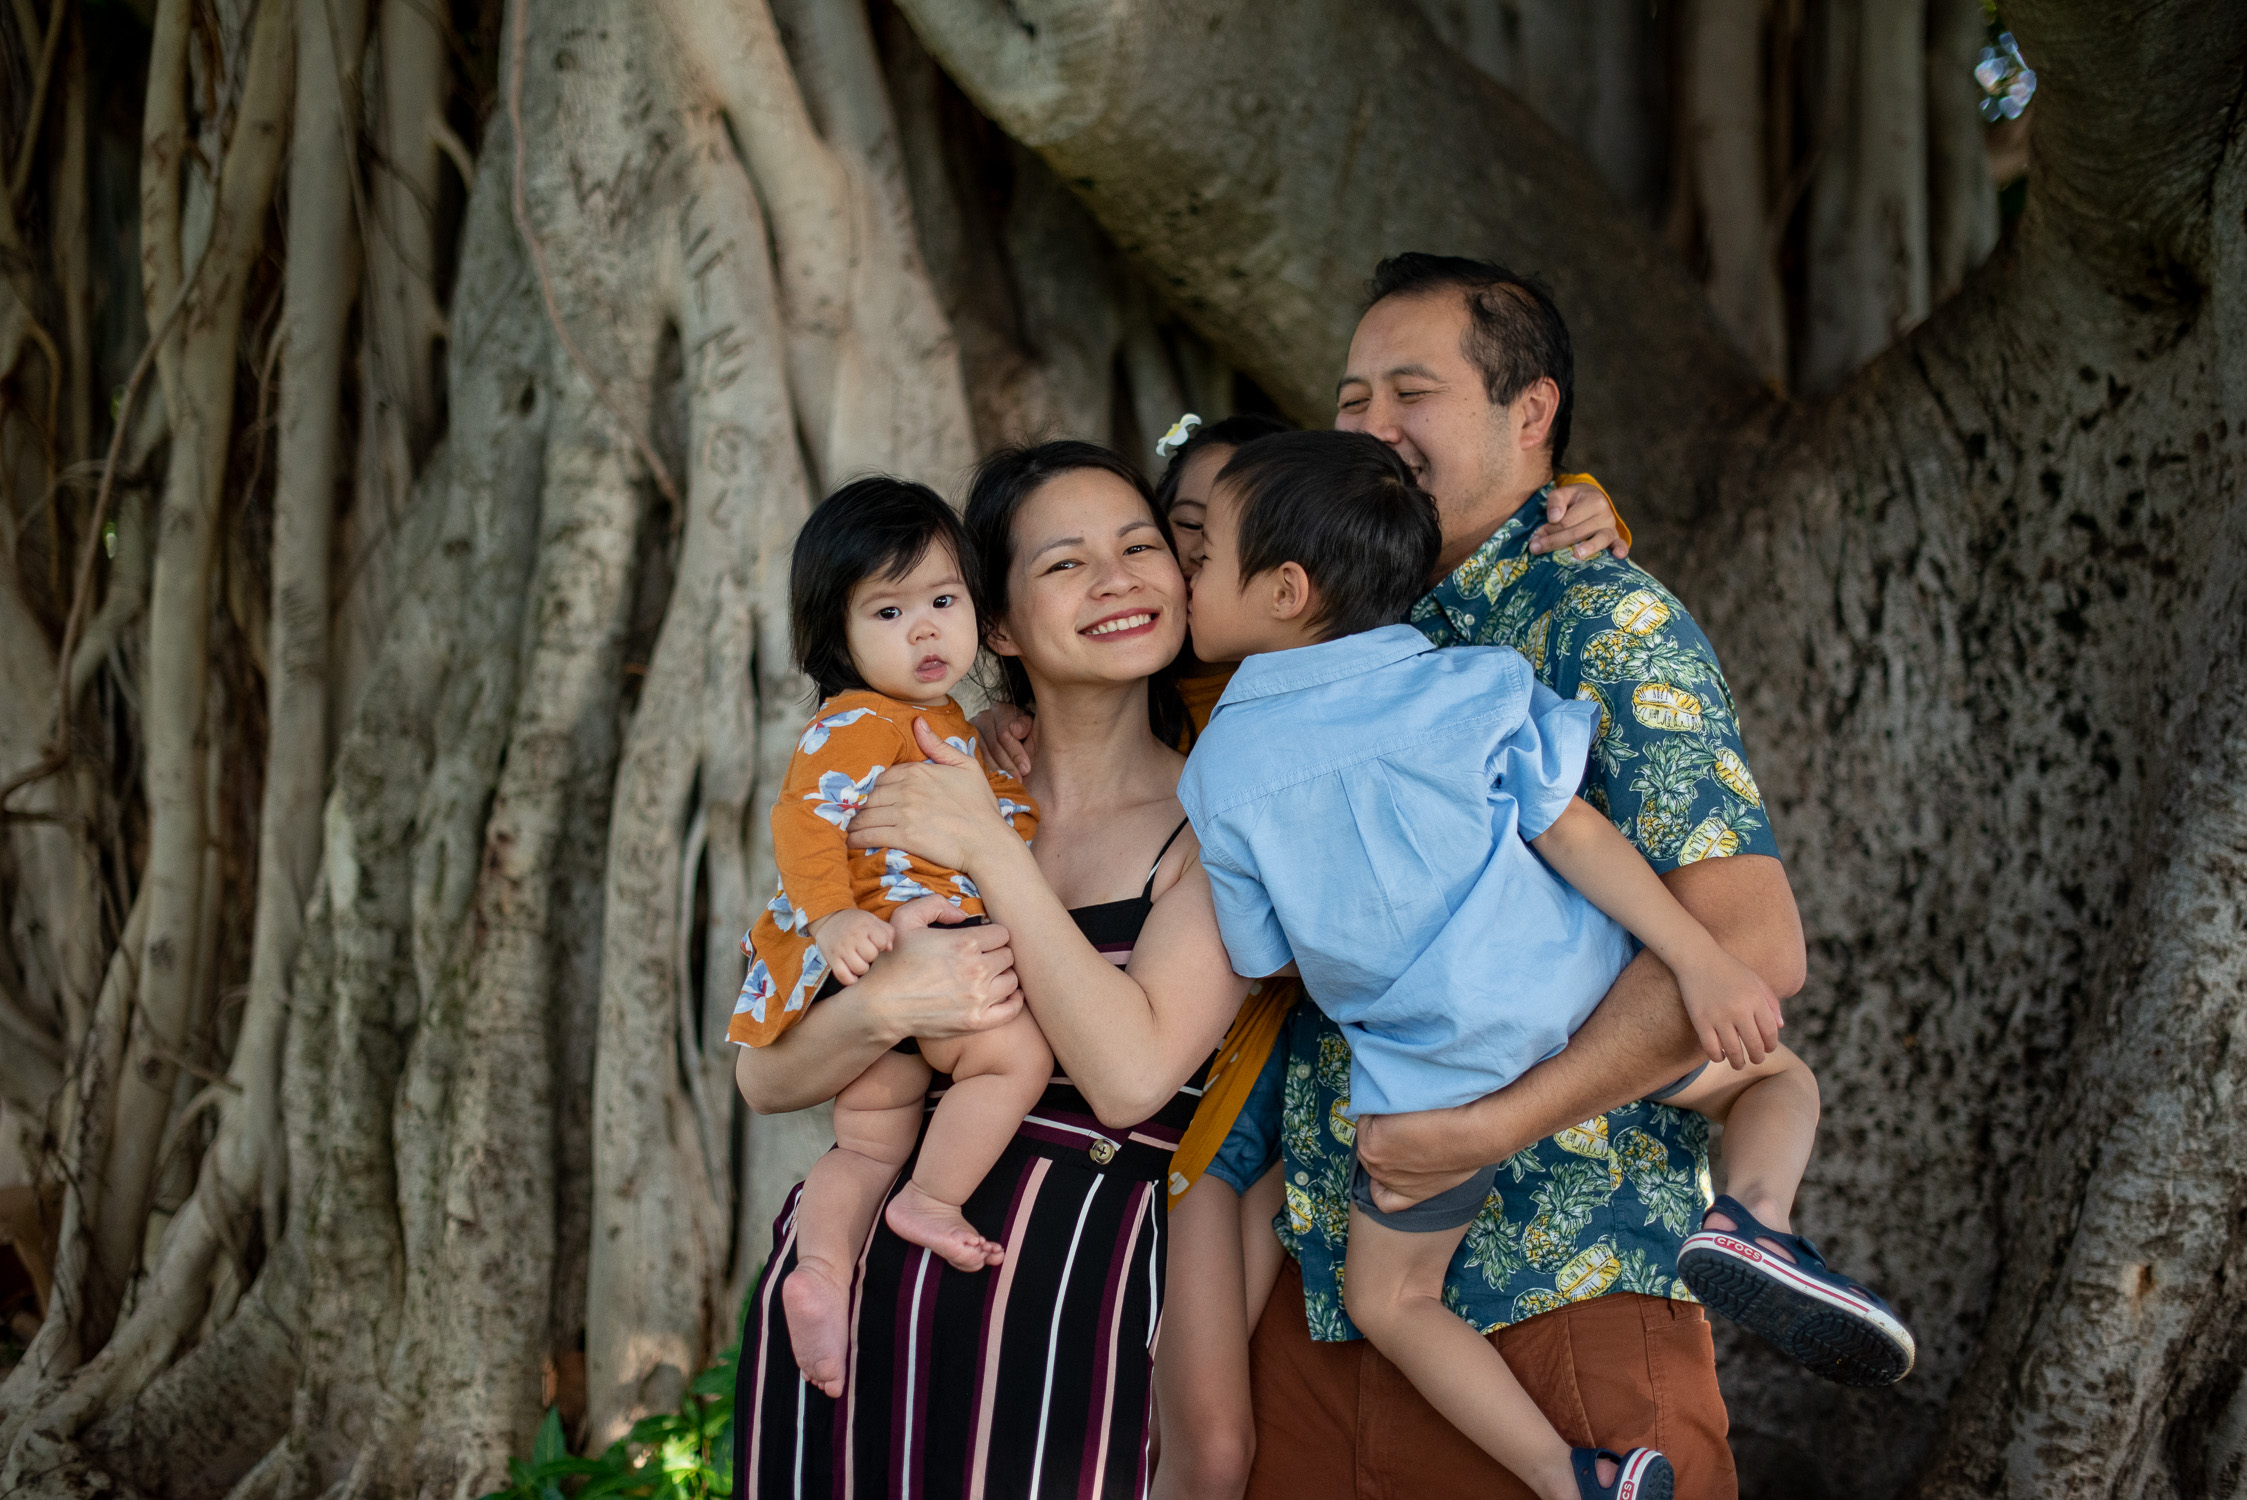 Family kissing mom in front of banyan tree at Ala Moana Beach Park